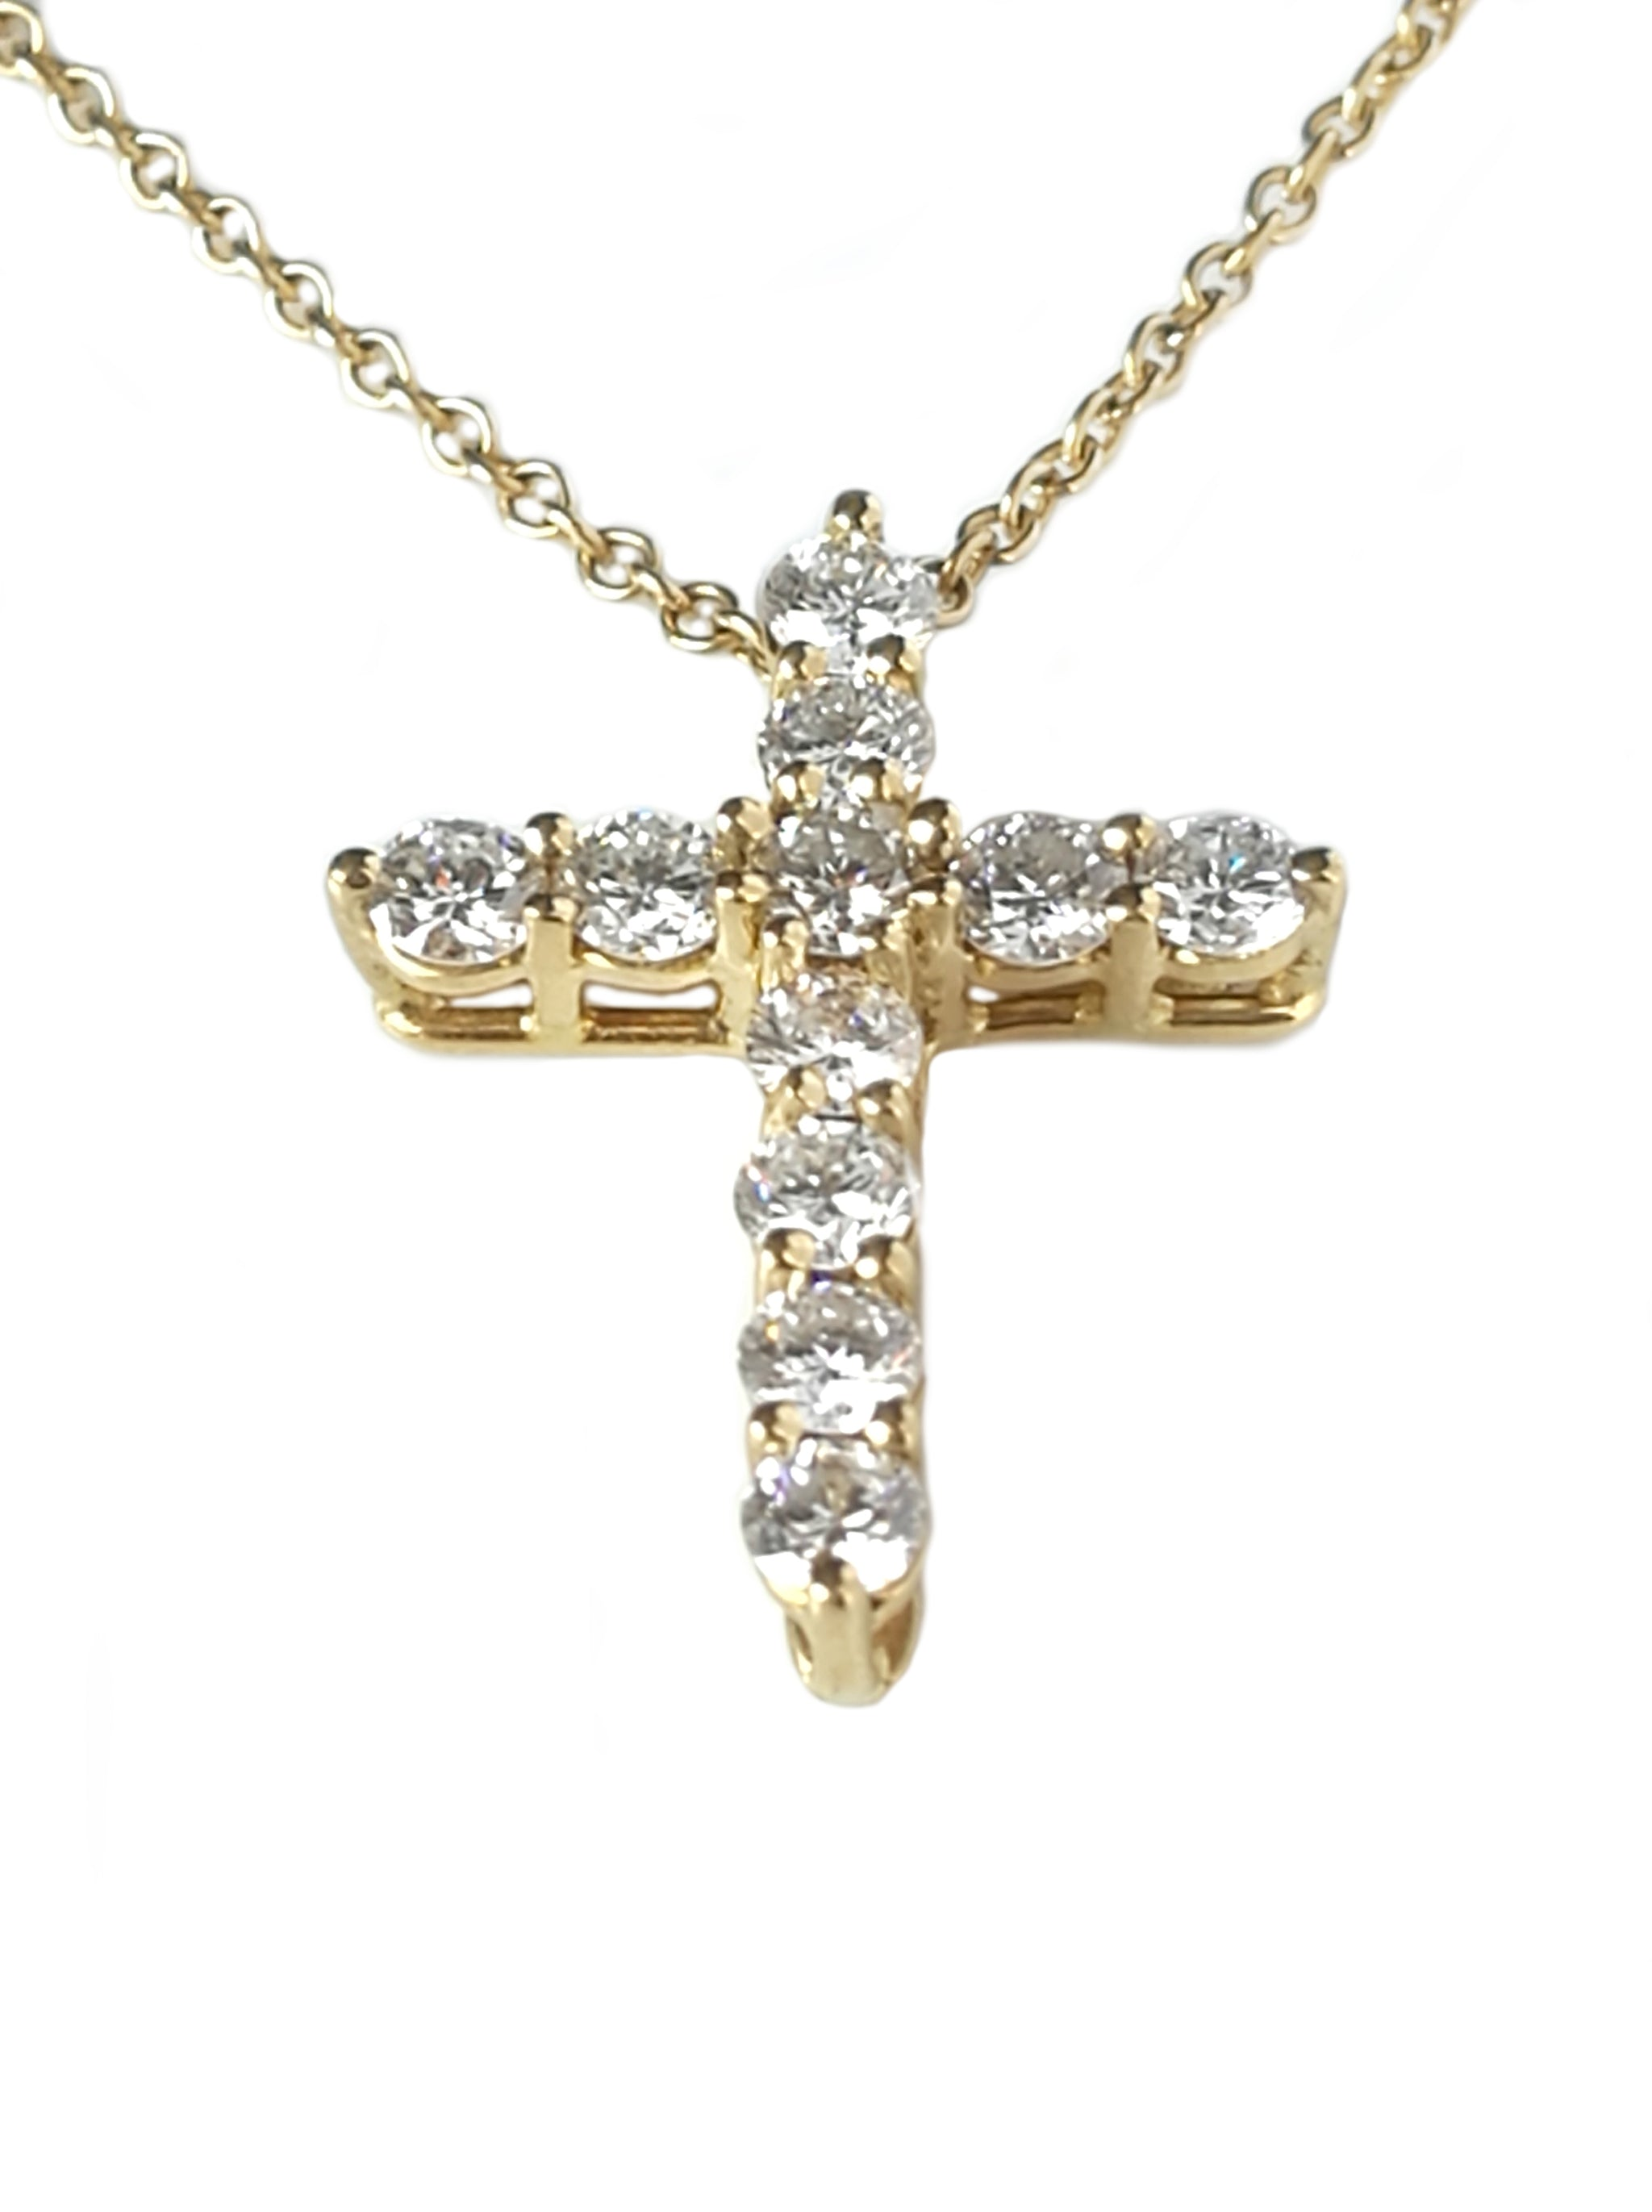 Tiffany & Co. 0.42ct Diamond and 18k Yellow Gold Cross Pendant, 16 inch